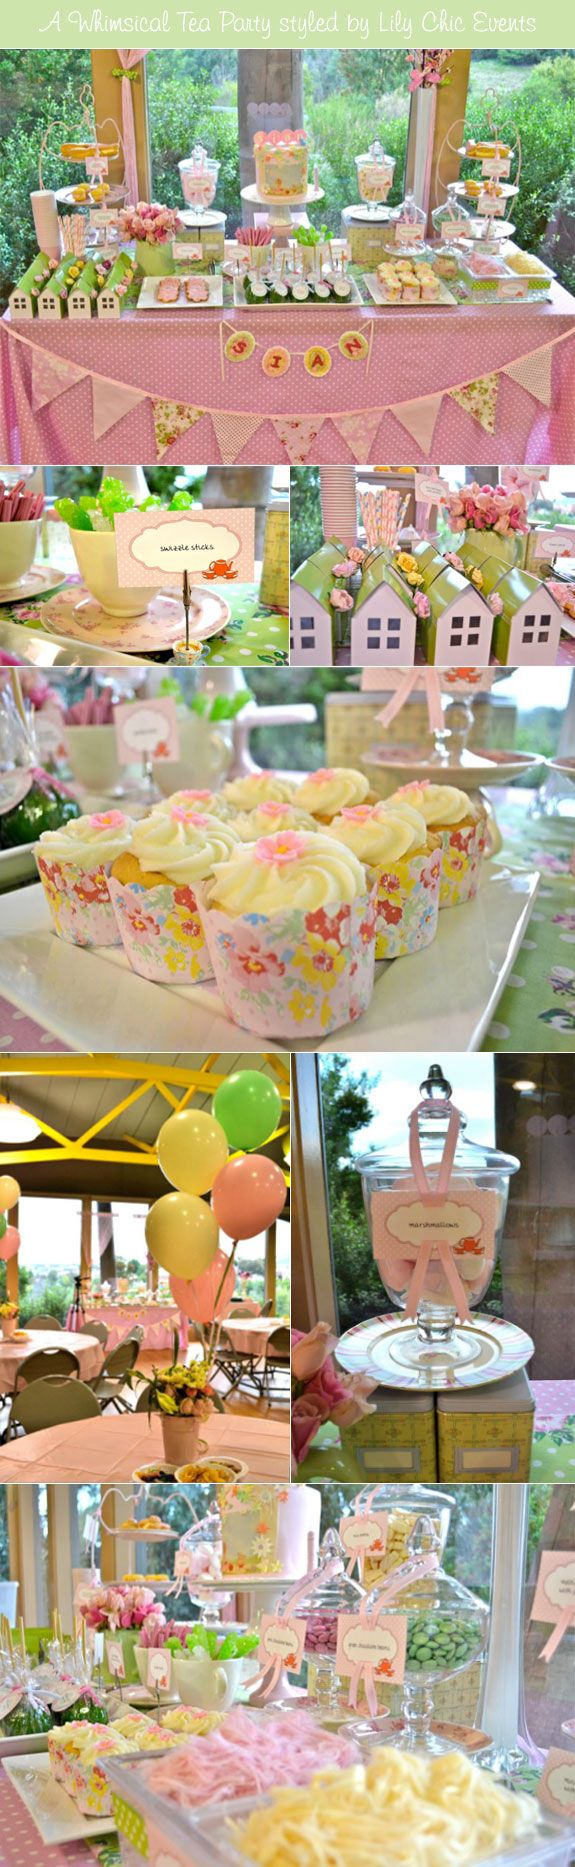 Pink and green bridal shower tea party...this gives me spring fever to throw a party!!! I love to cater!!!